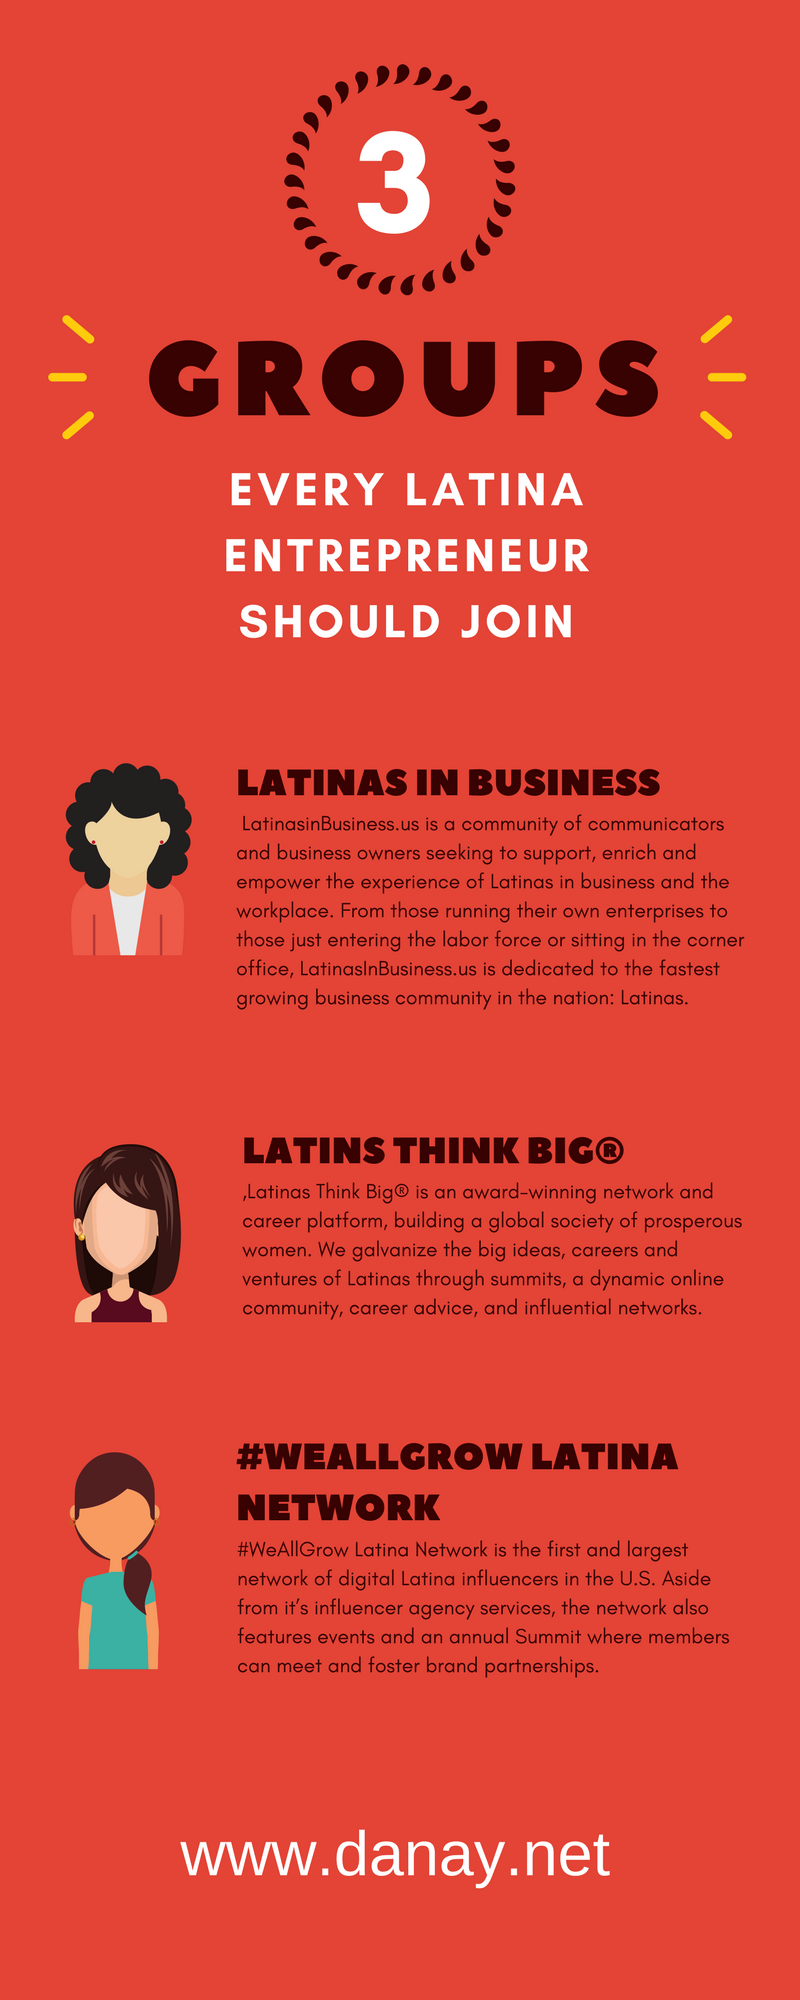 3 Groups Every Latina Entrepreneur Should Join - Pinterest